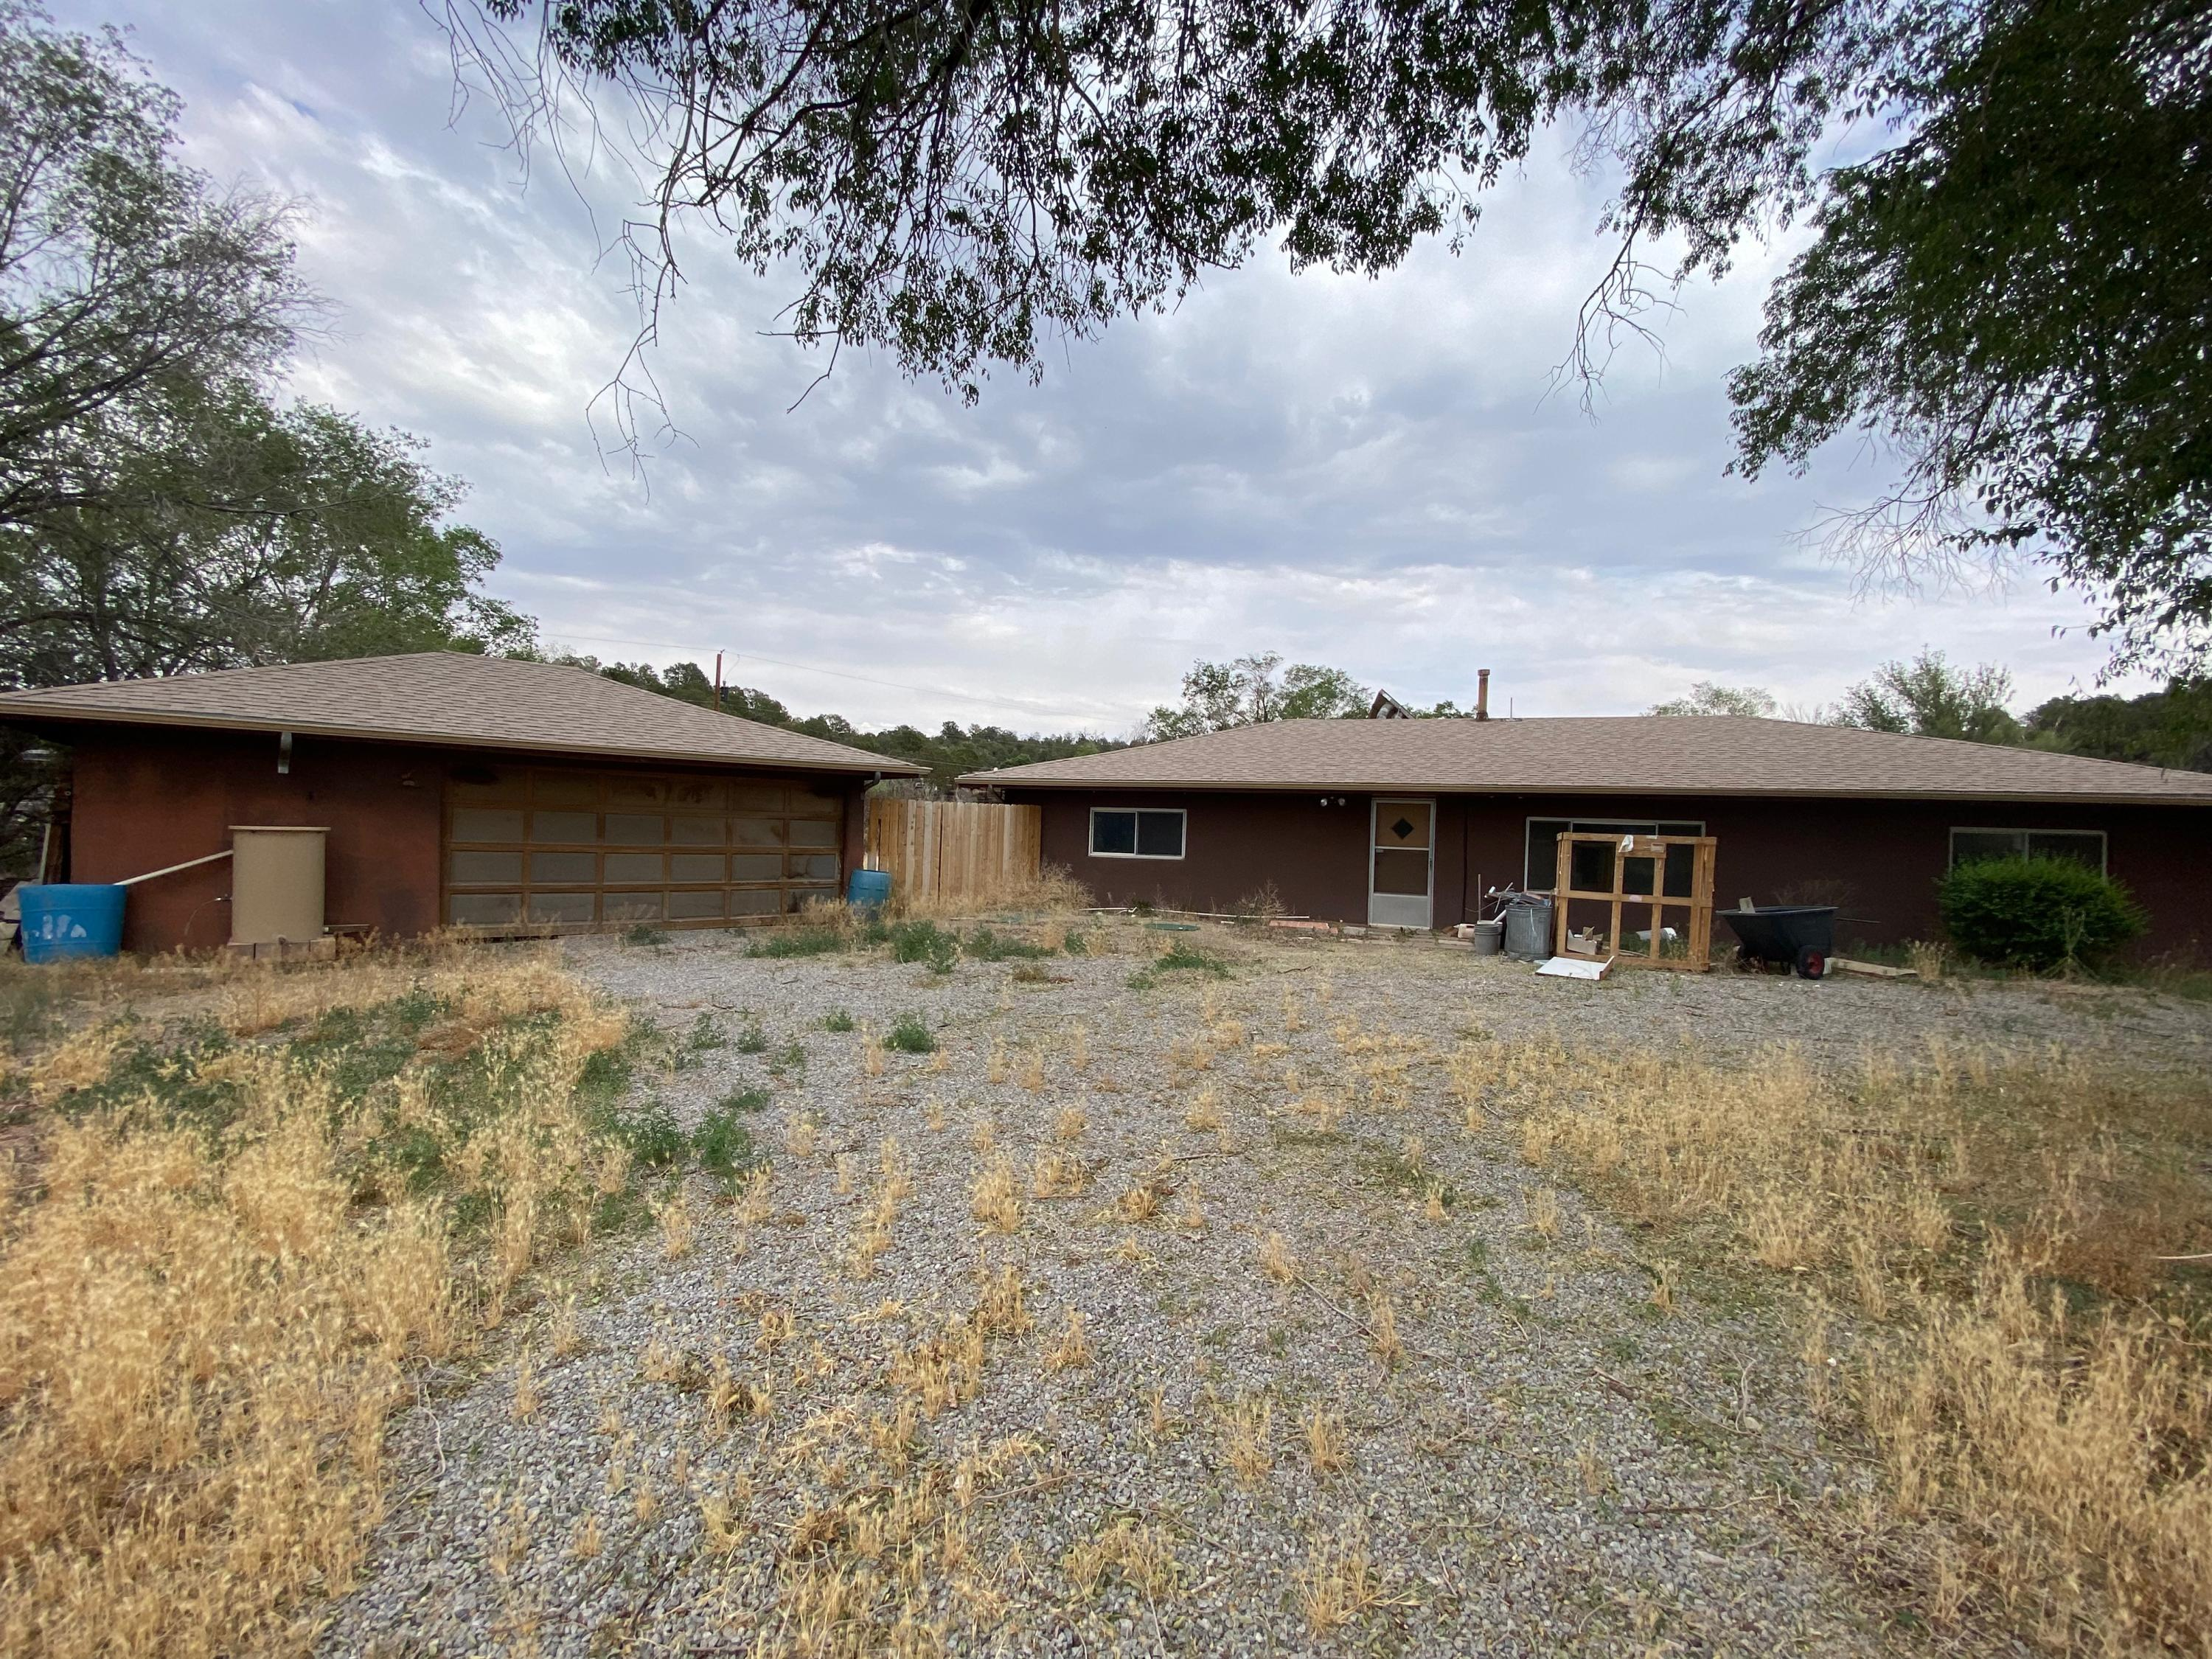 This property has begun a remodel and is currently down to the studs and ready for you to finish it to your own desires.